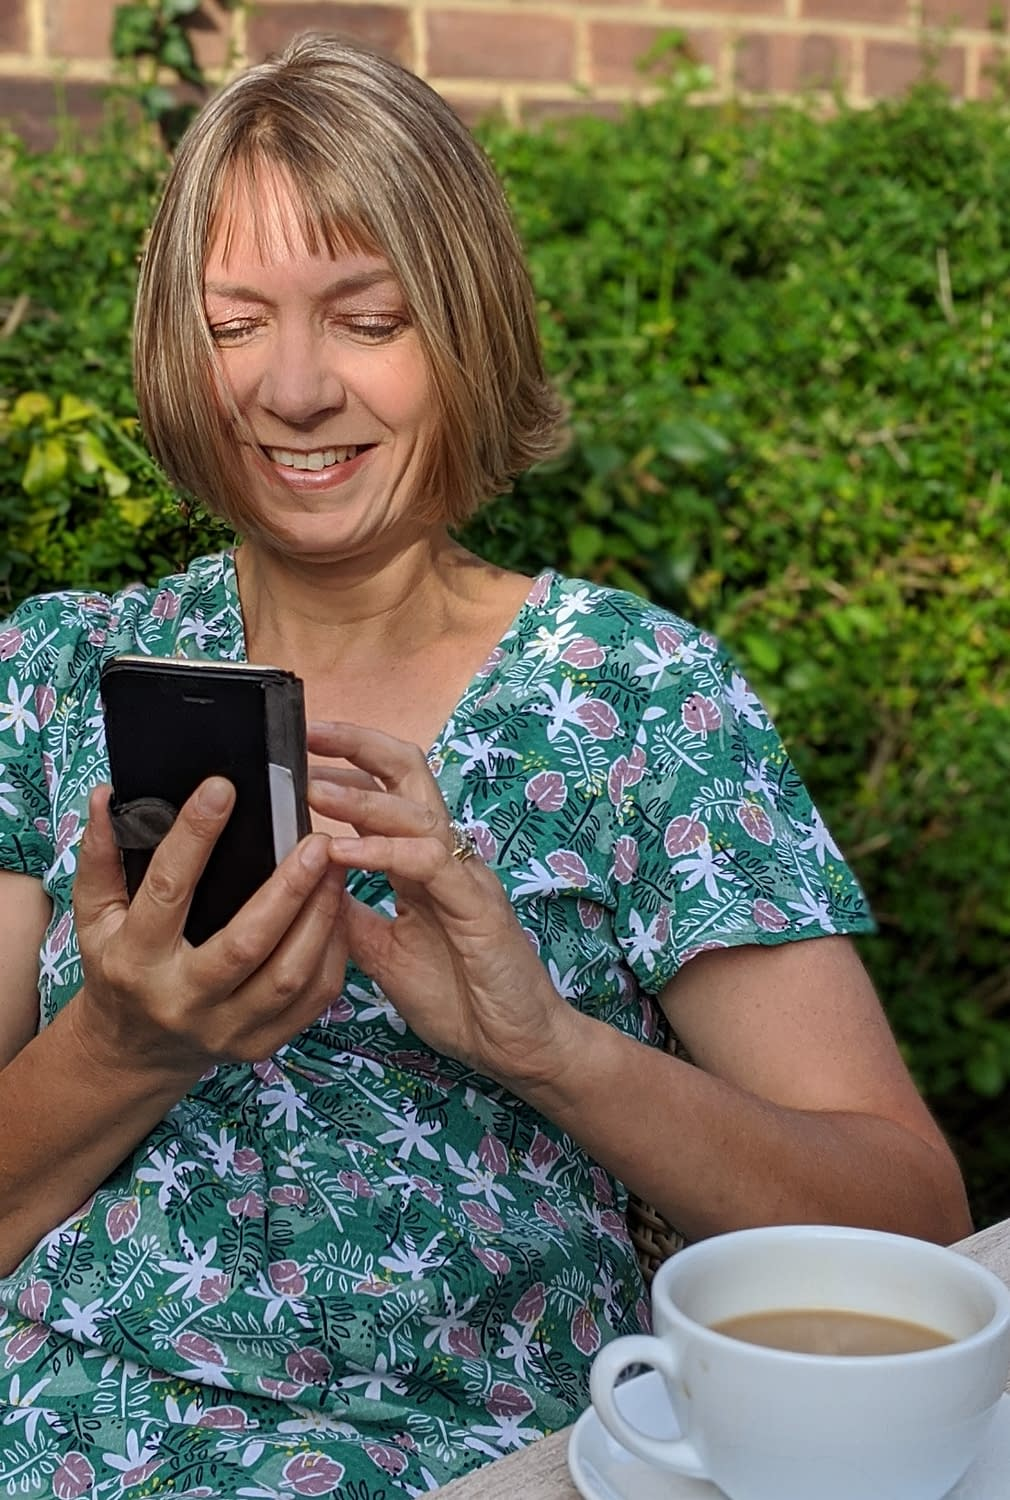 Liz our MD dealing with the social media on her phone